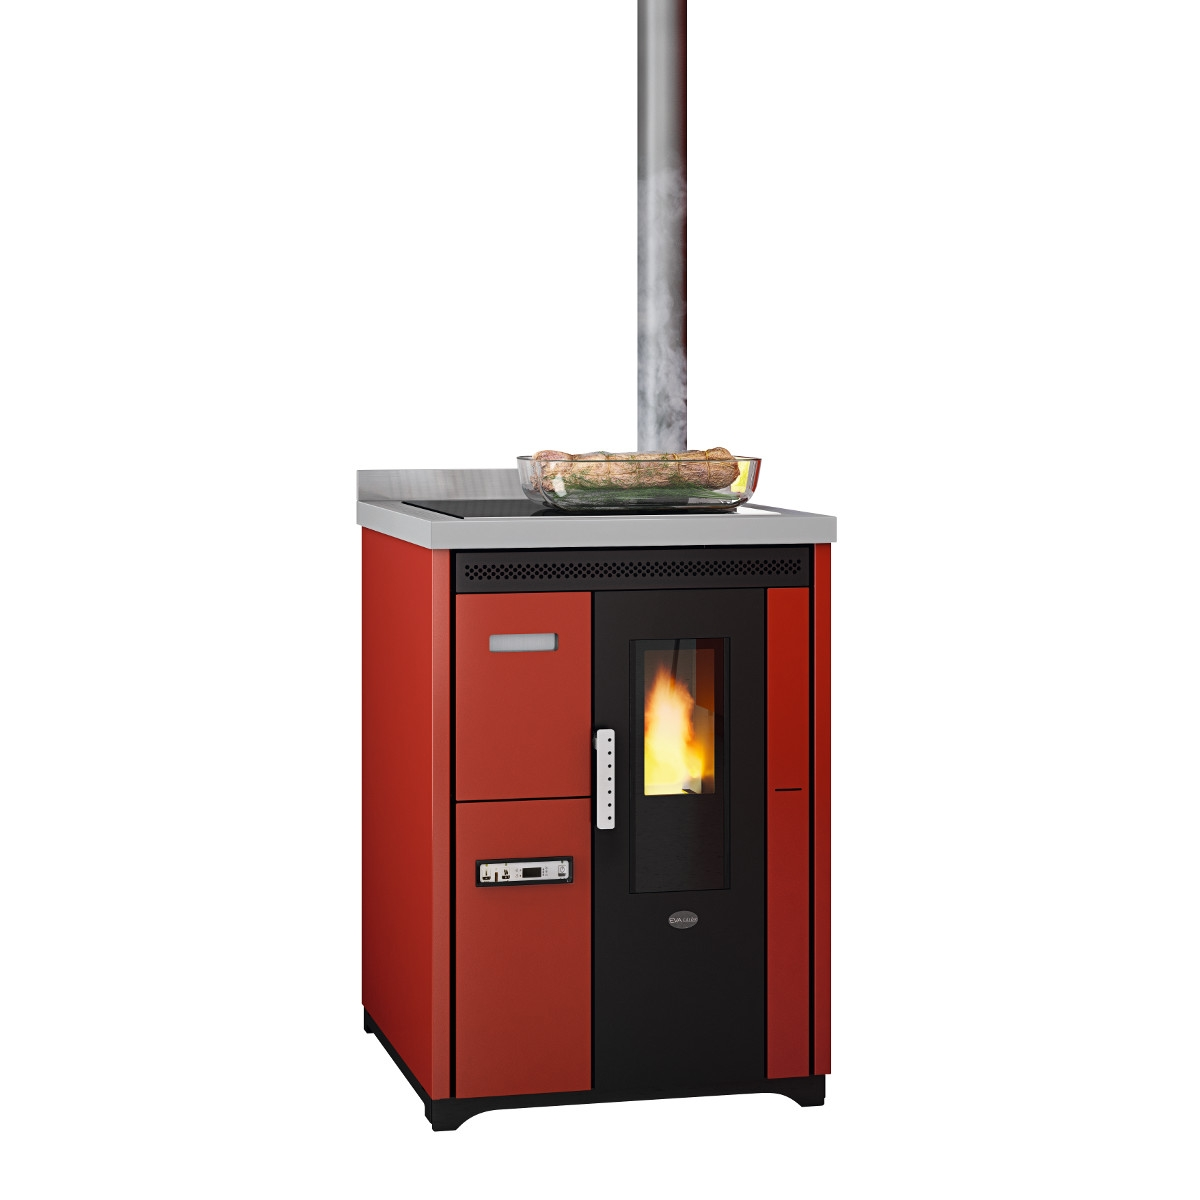 Cucina Pellet Cucina A Pellet Nina Rossa 7 5kw Grossishop It Tutto